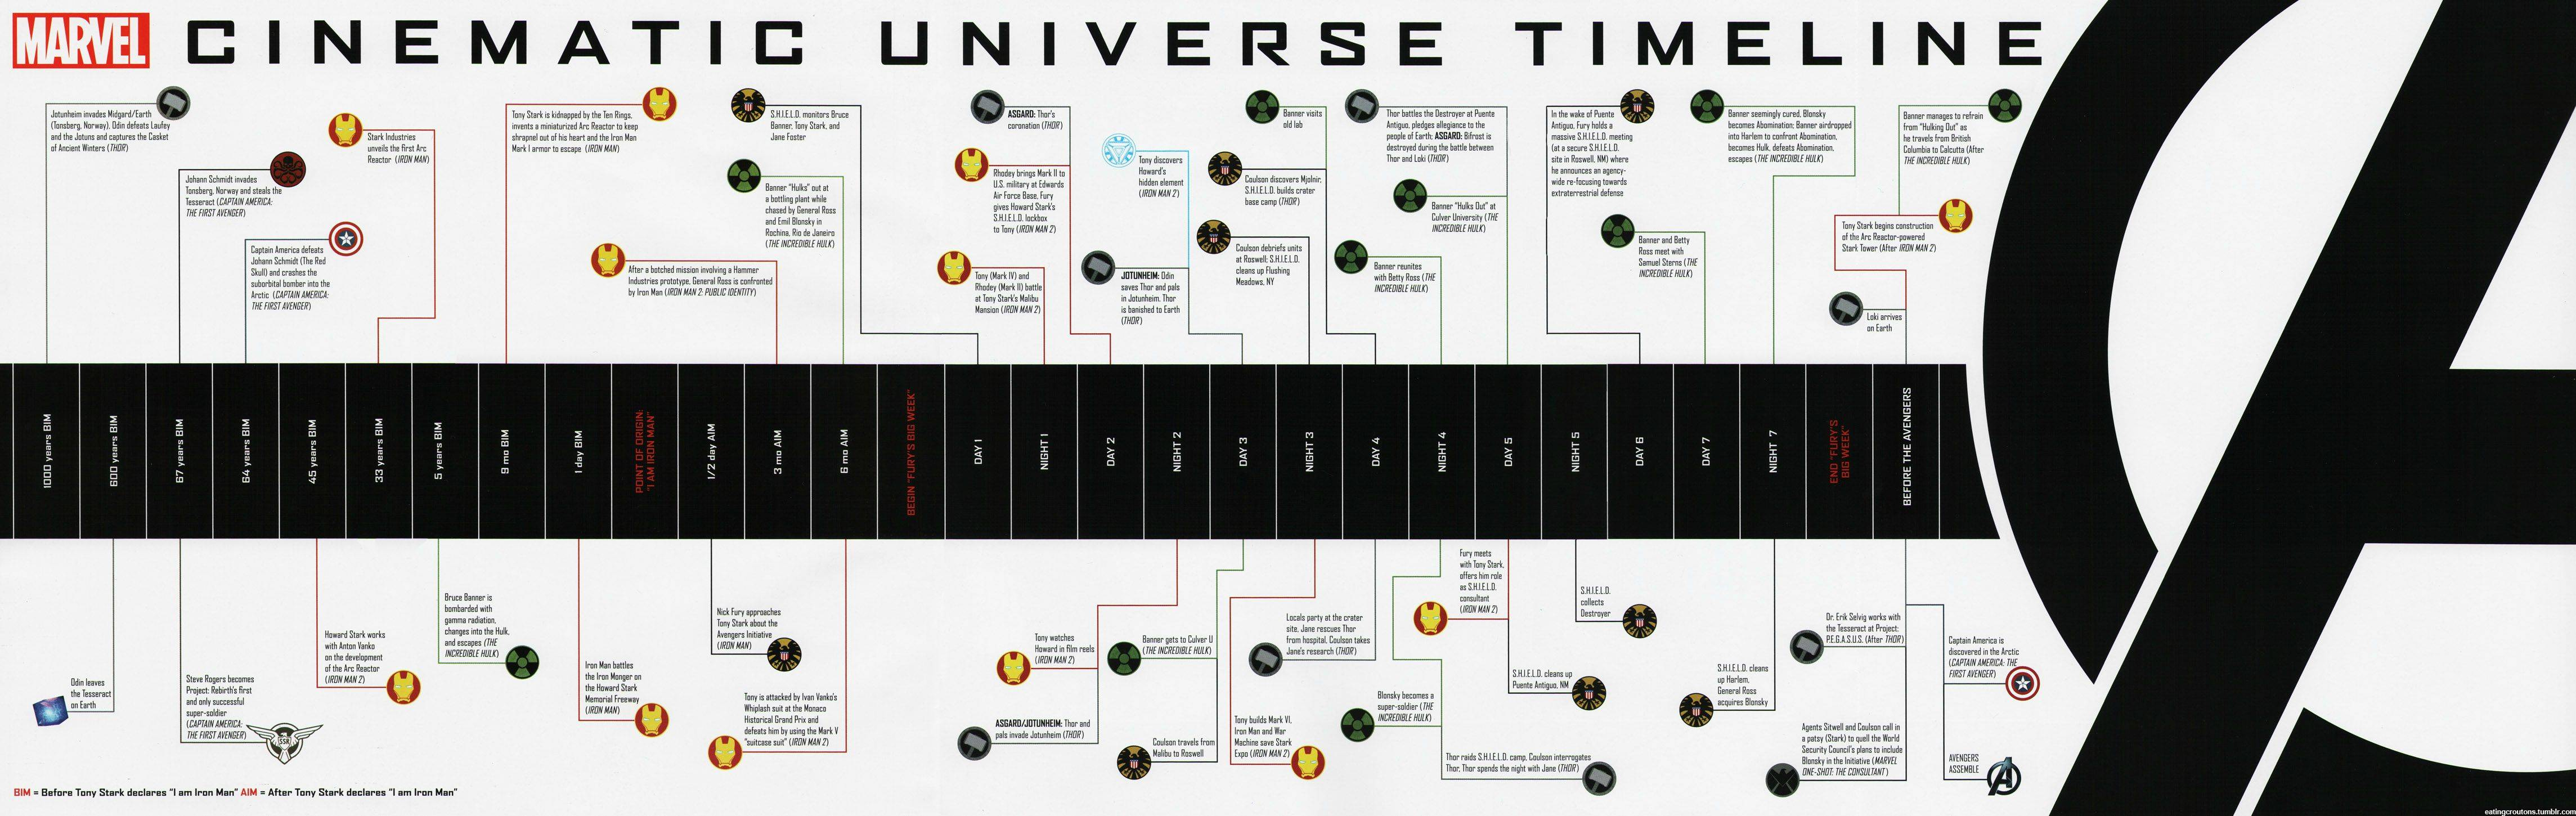 Timeline | Marvel Cinematic Universe Wiki | FANDOM powered by Wikia